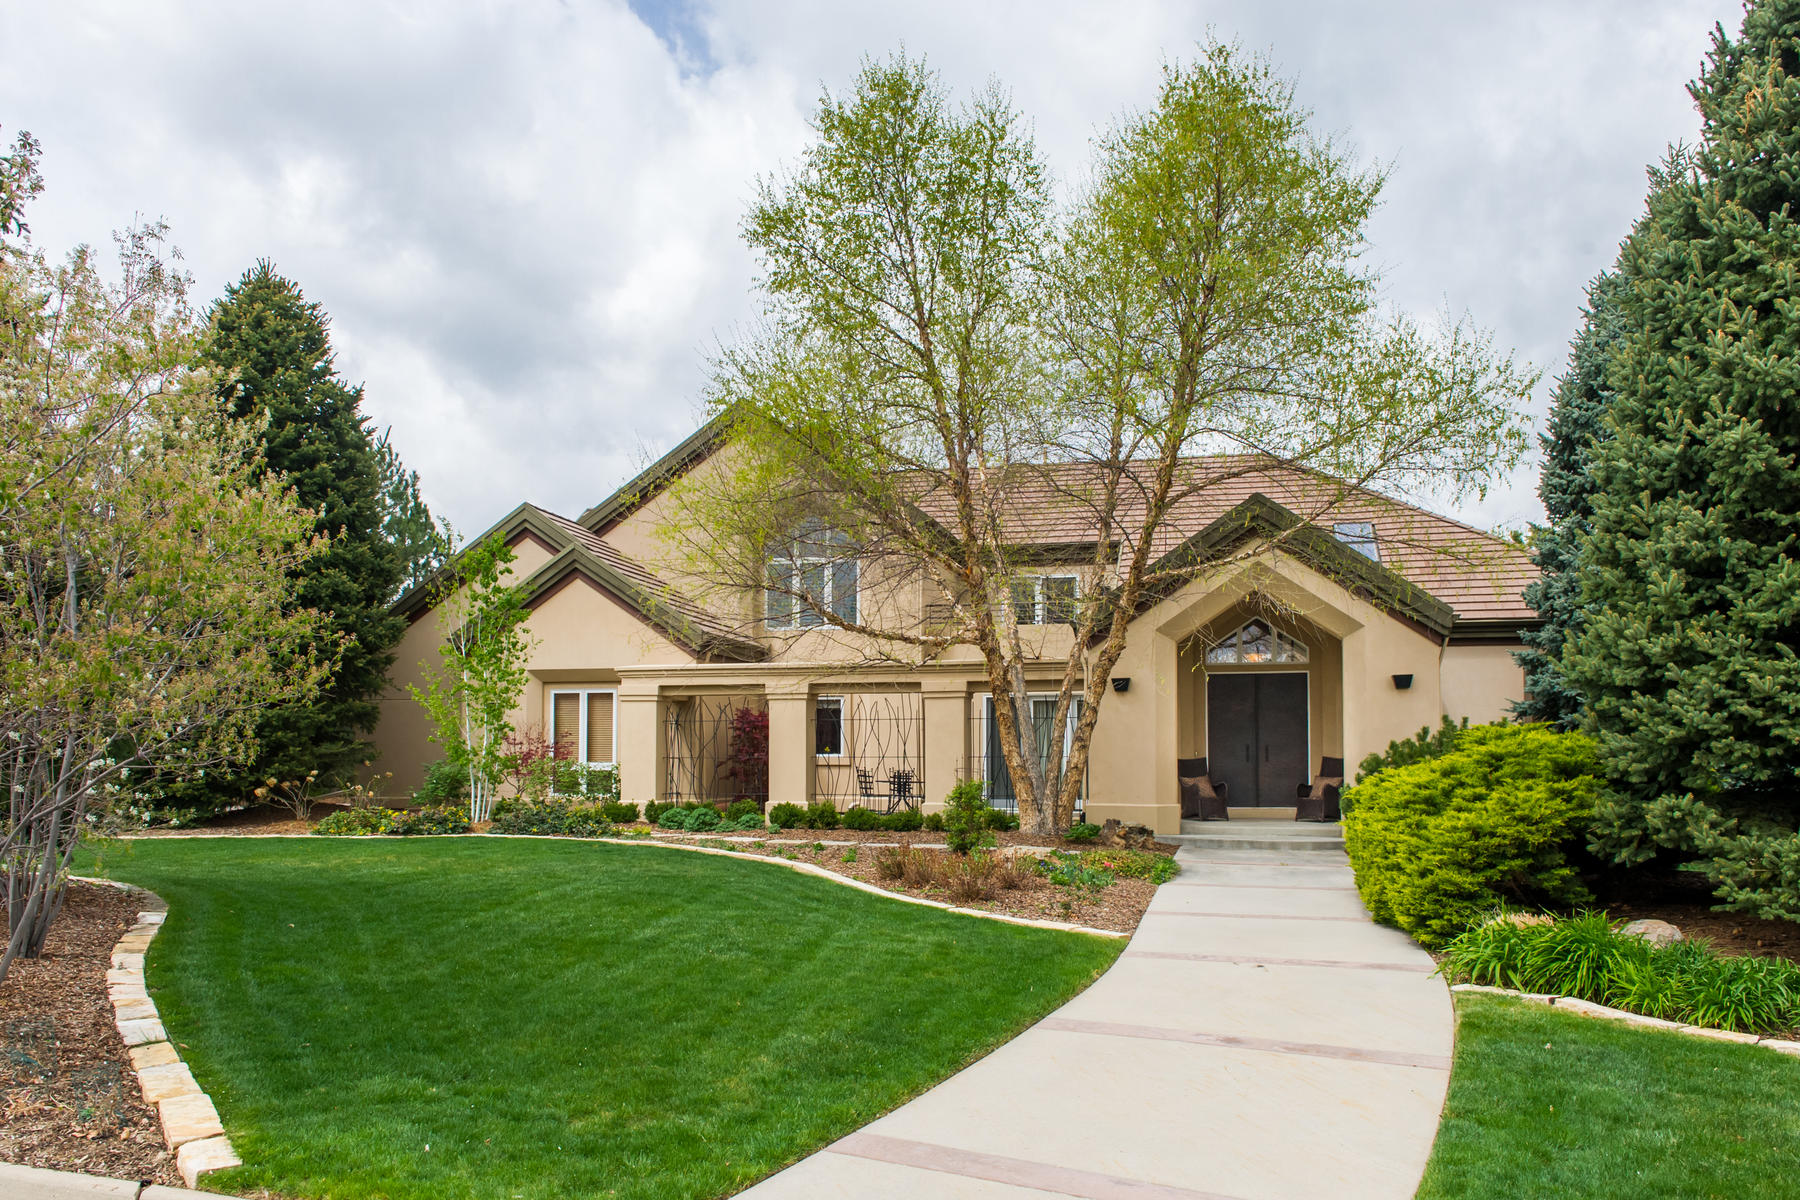 Single Family Home for Sale at Stunning Residence, Completely Renovated, 3/4 Acre Lot 5761 S. Elm Street Greenwood Village, Colorado, 80121 United States